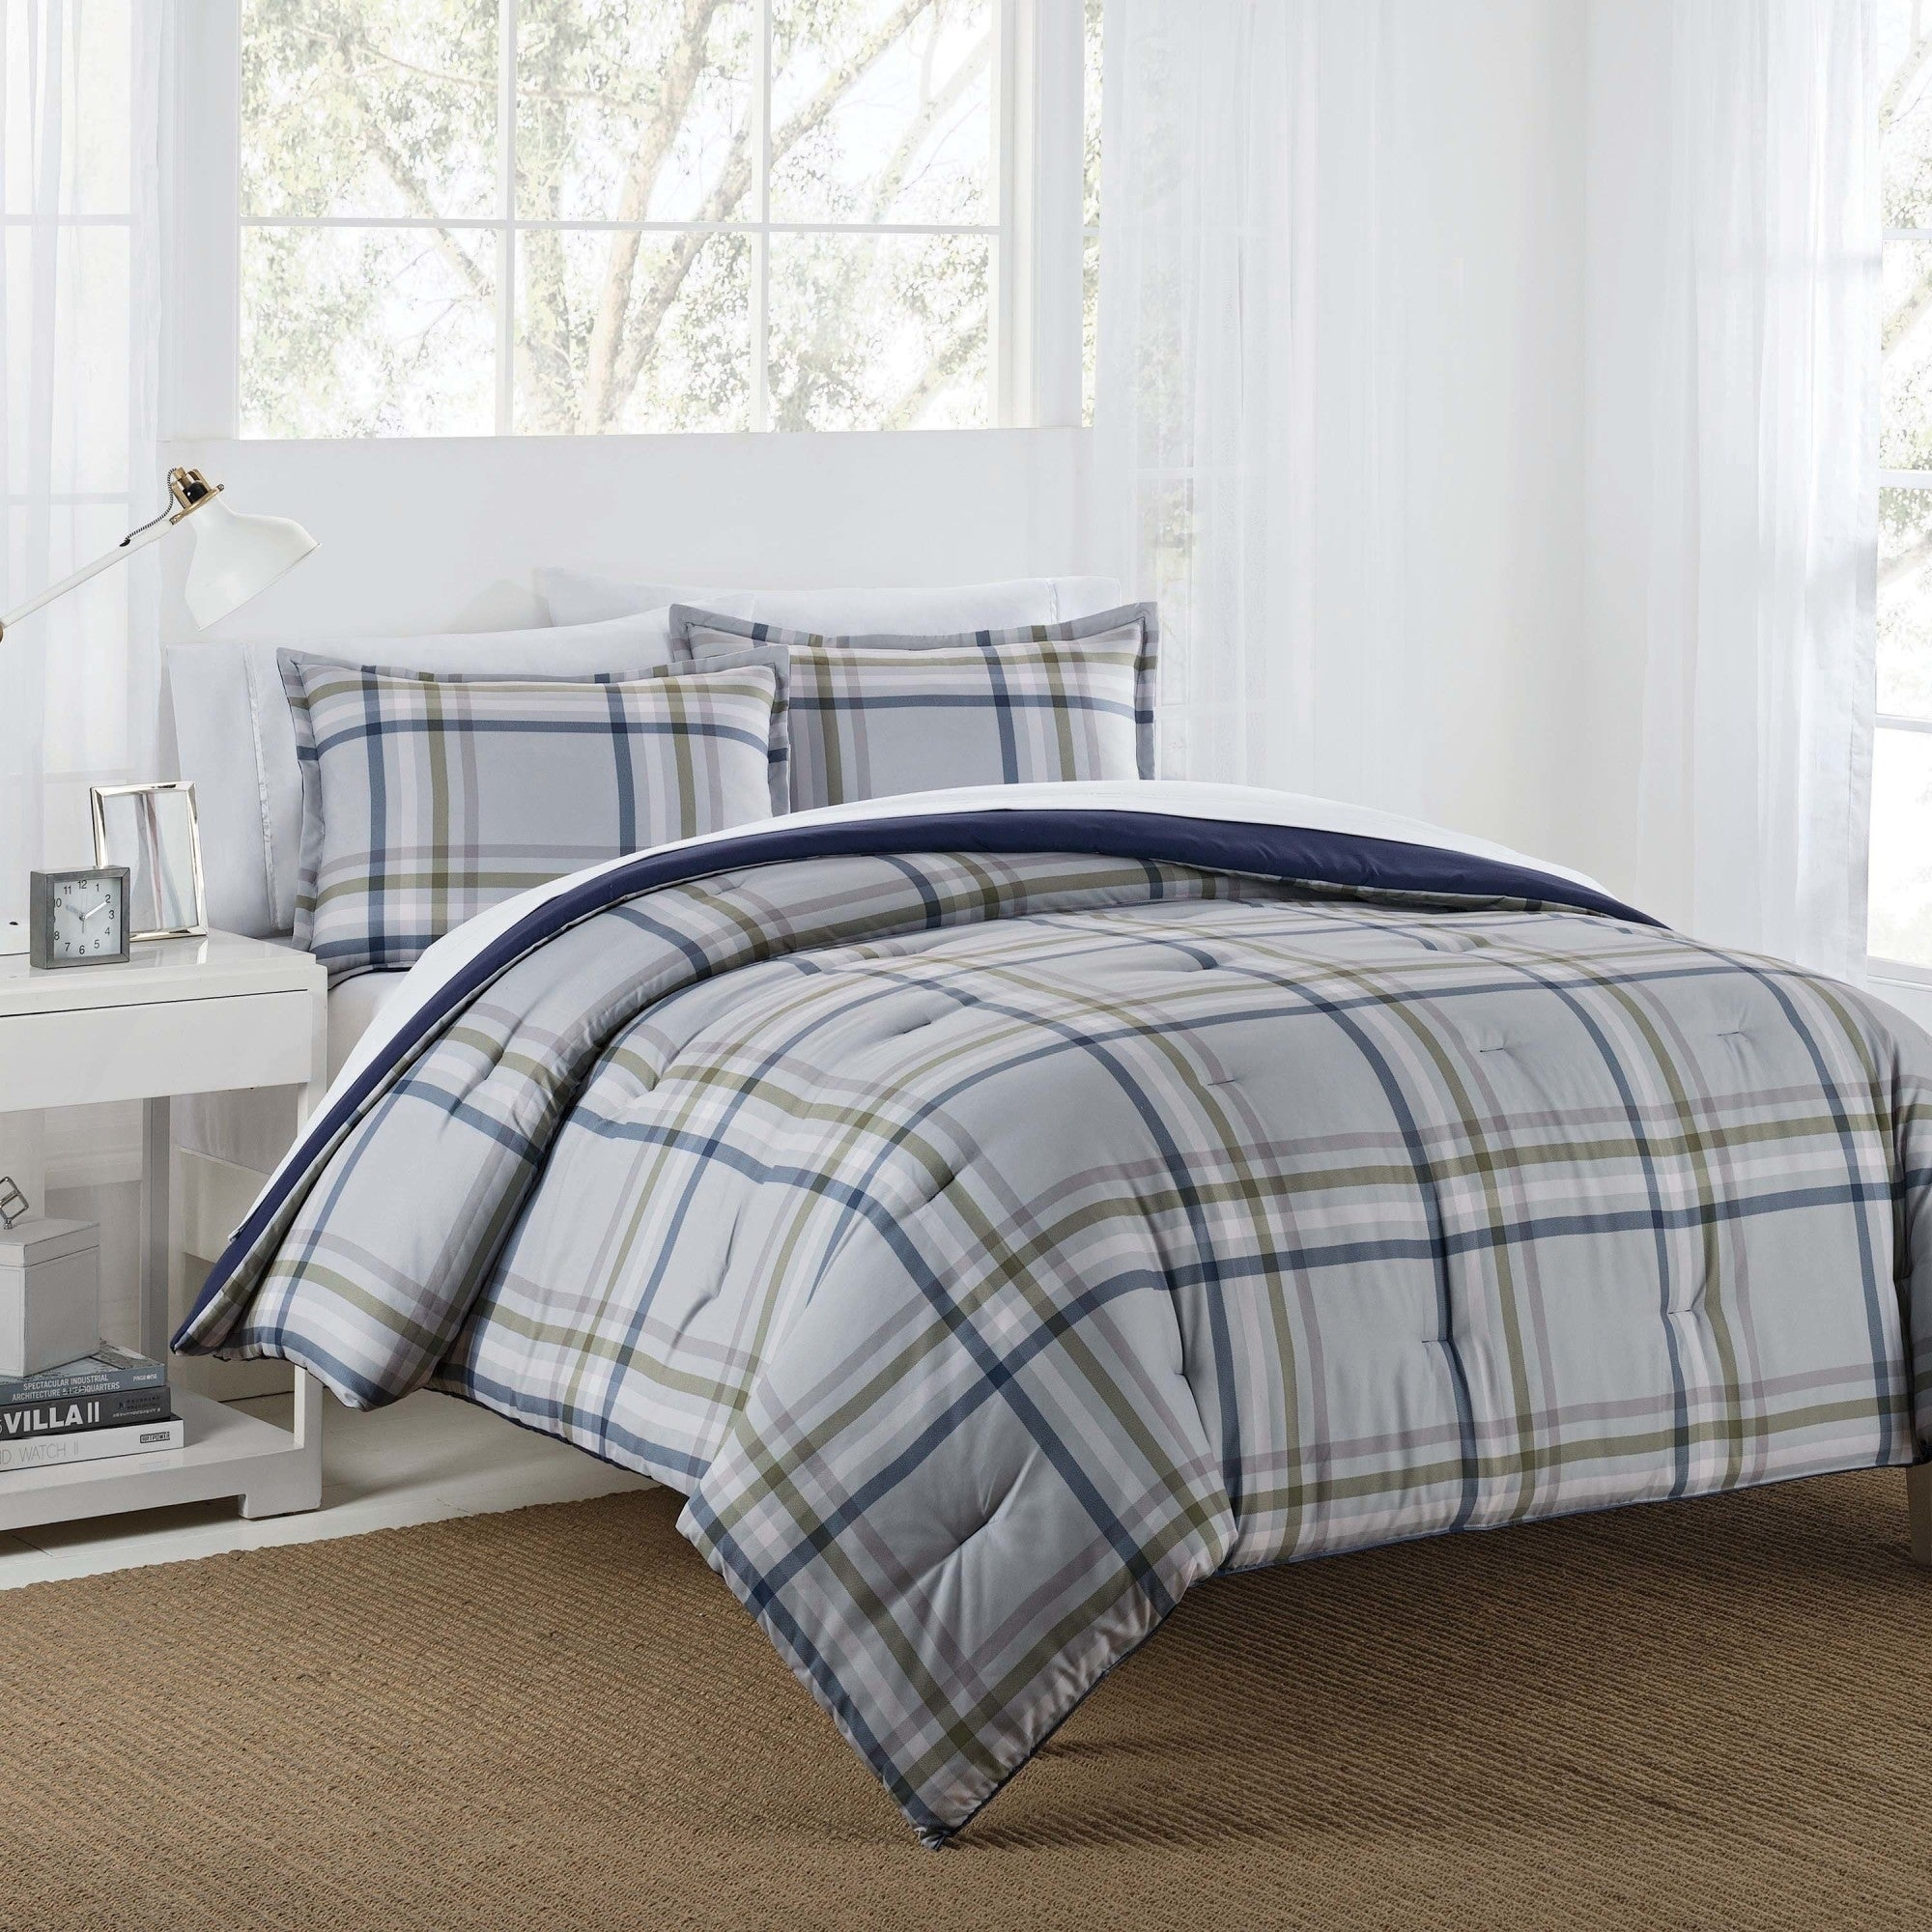 Izod Connor Grey Navy Reversible Comforter Set With Shams Overstock 20175810